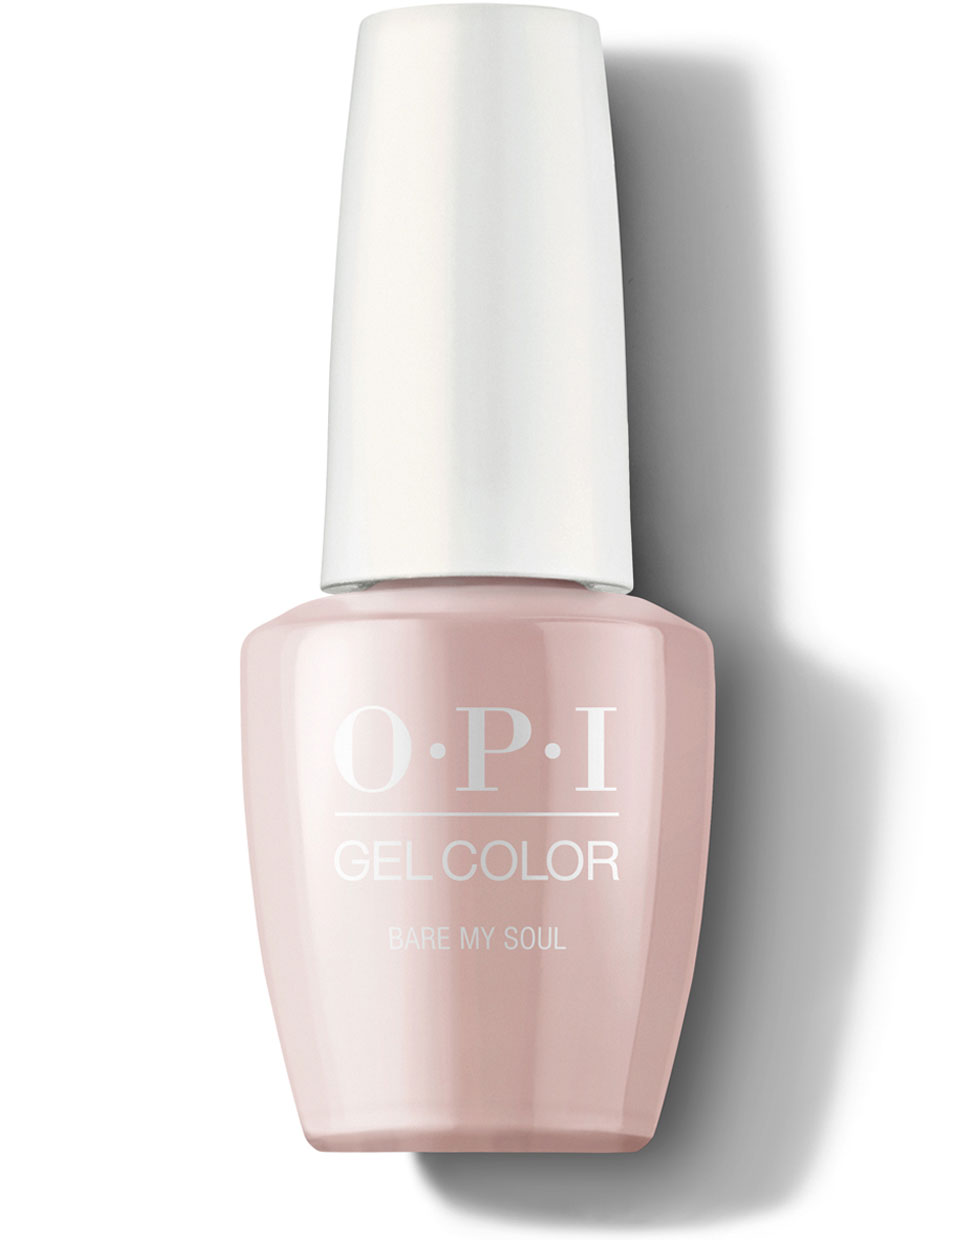 Bare My Soul Gelcolor Opi